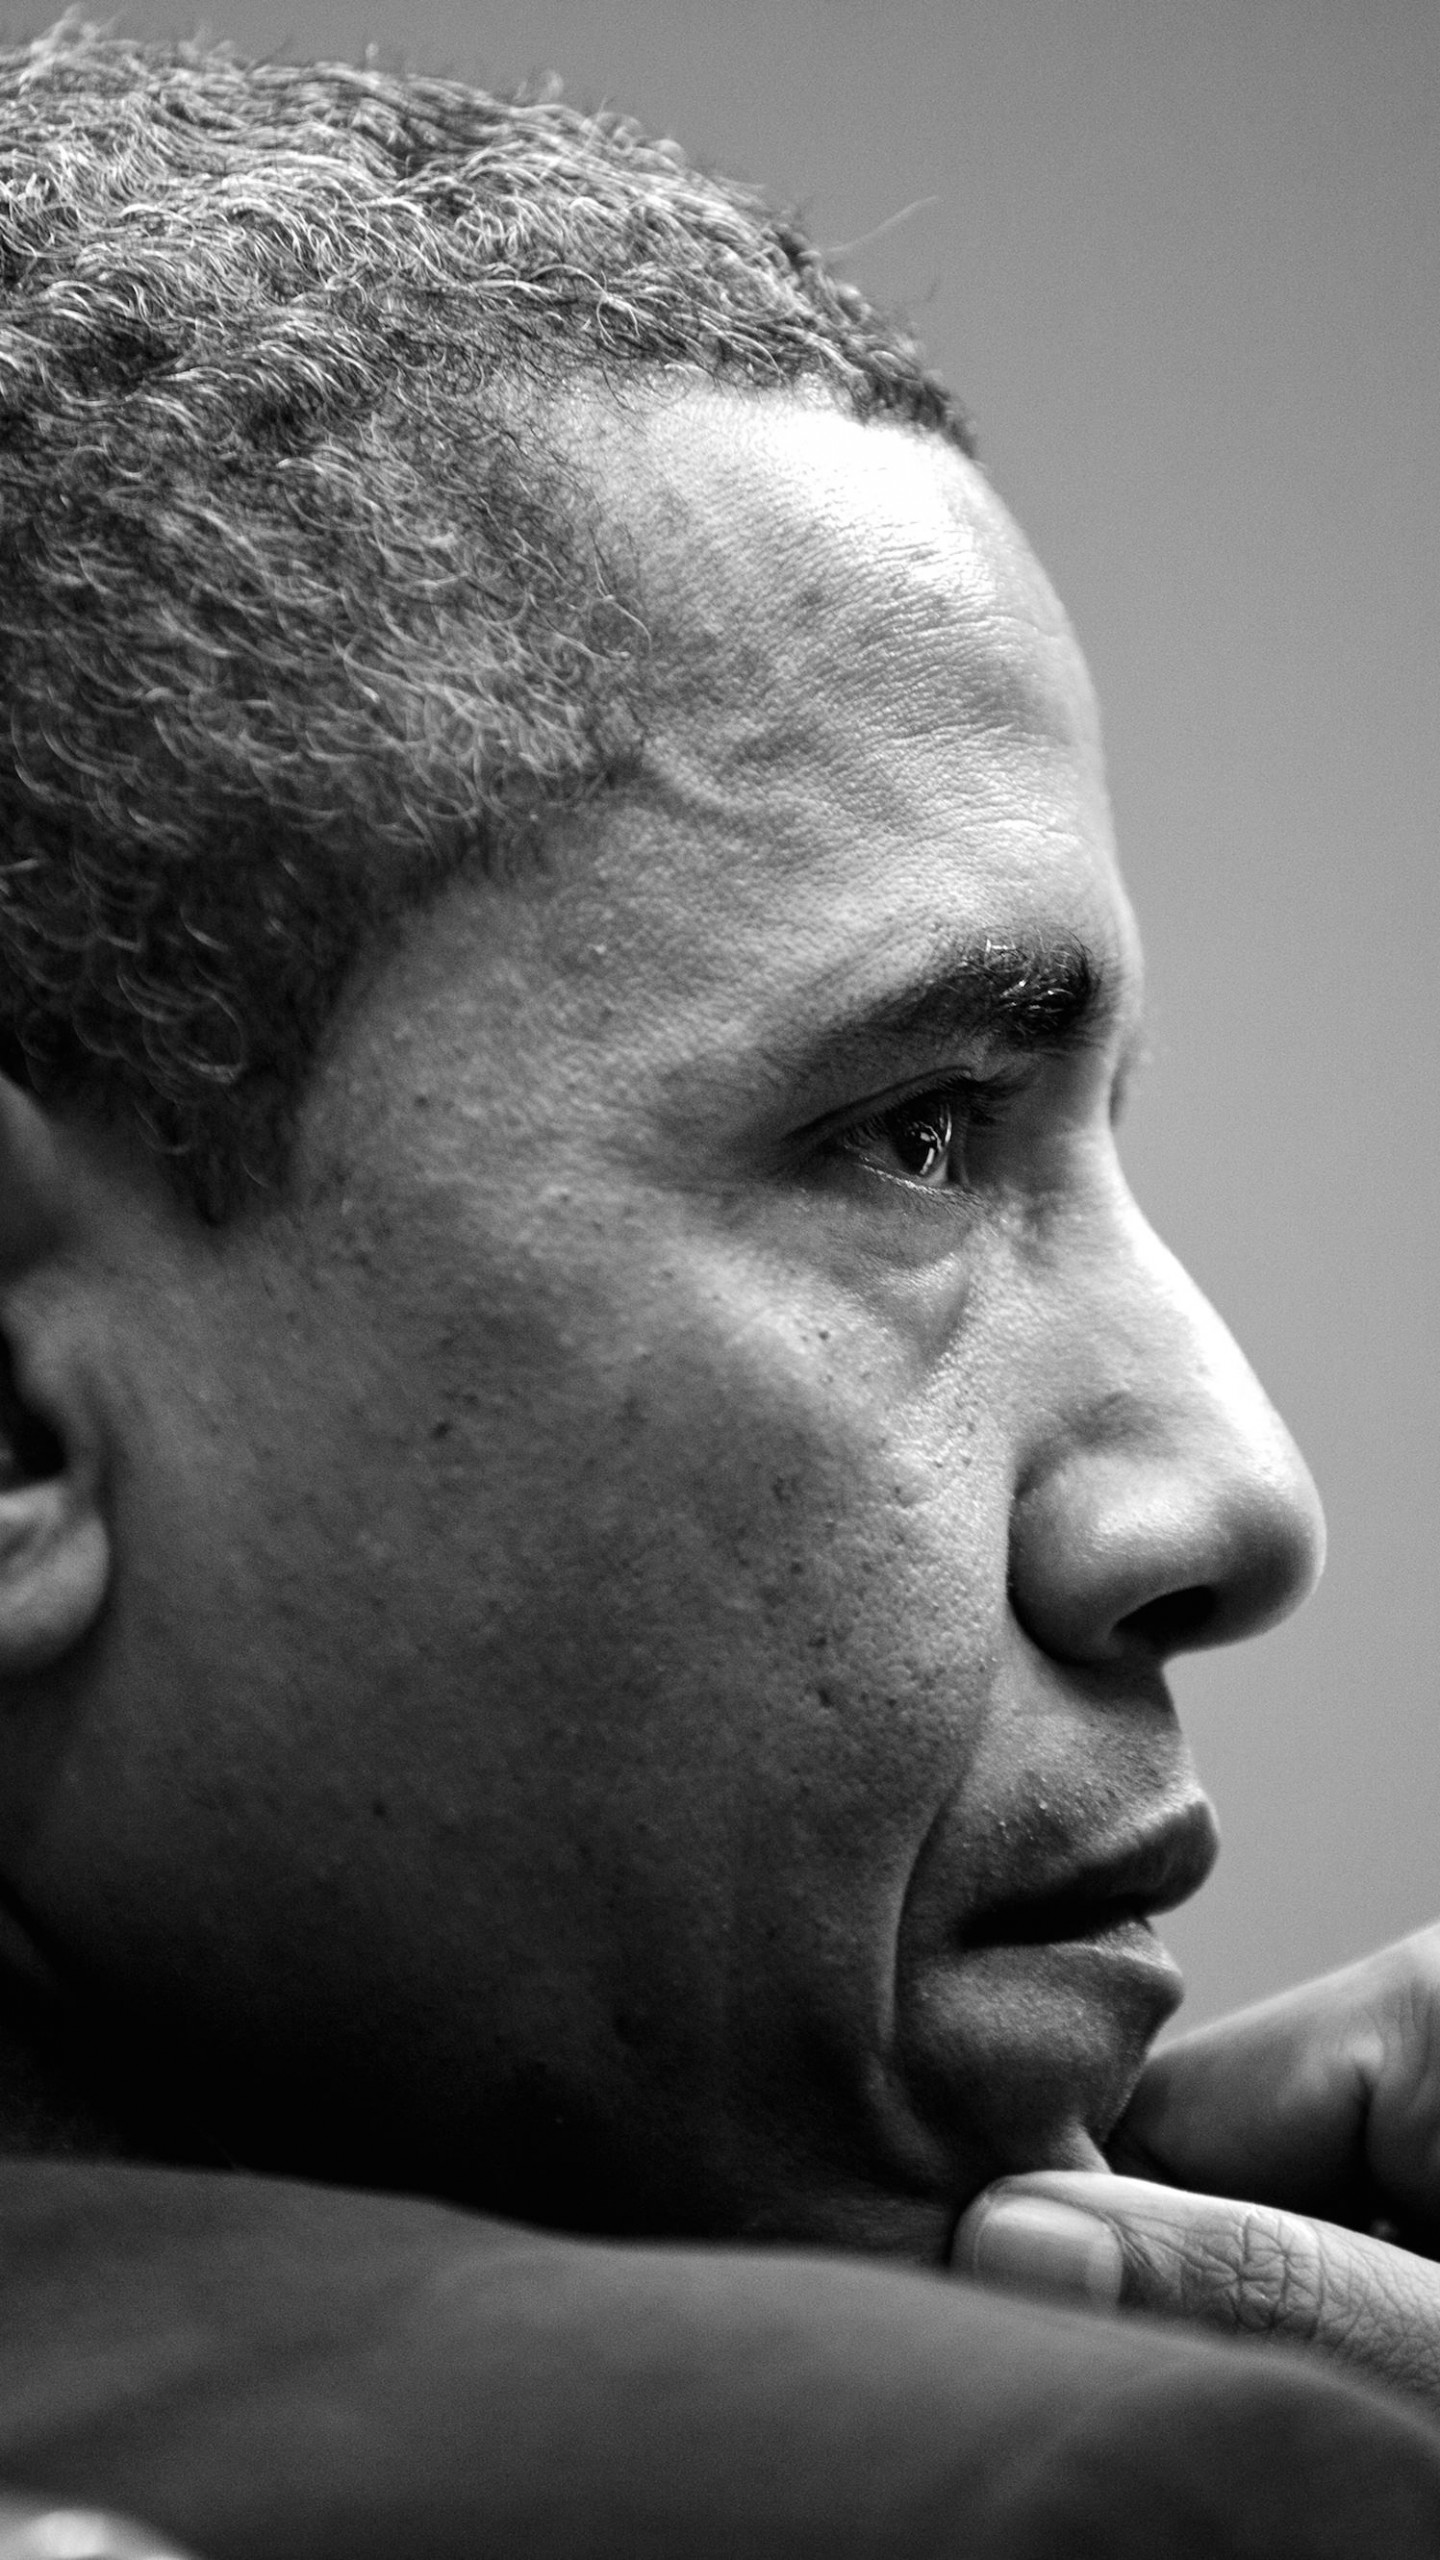 Barack Obama in Black & White Wallpaper for LG G3